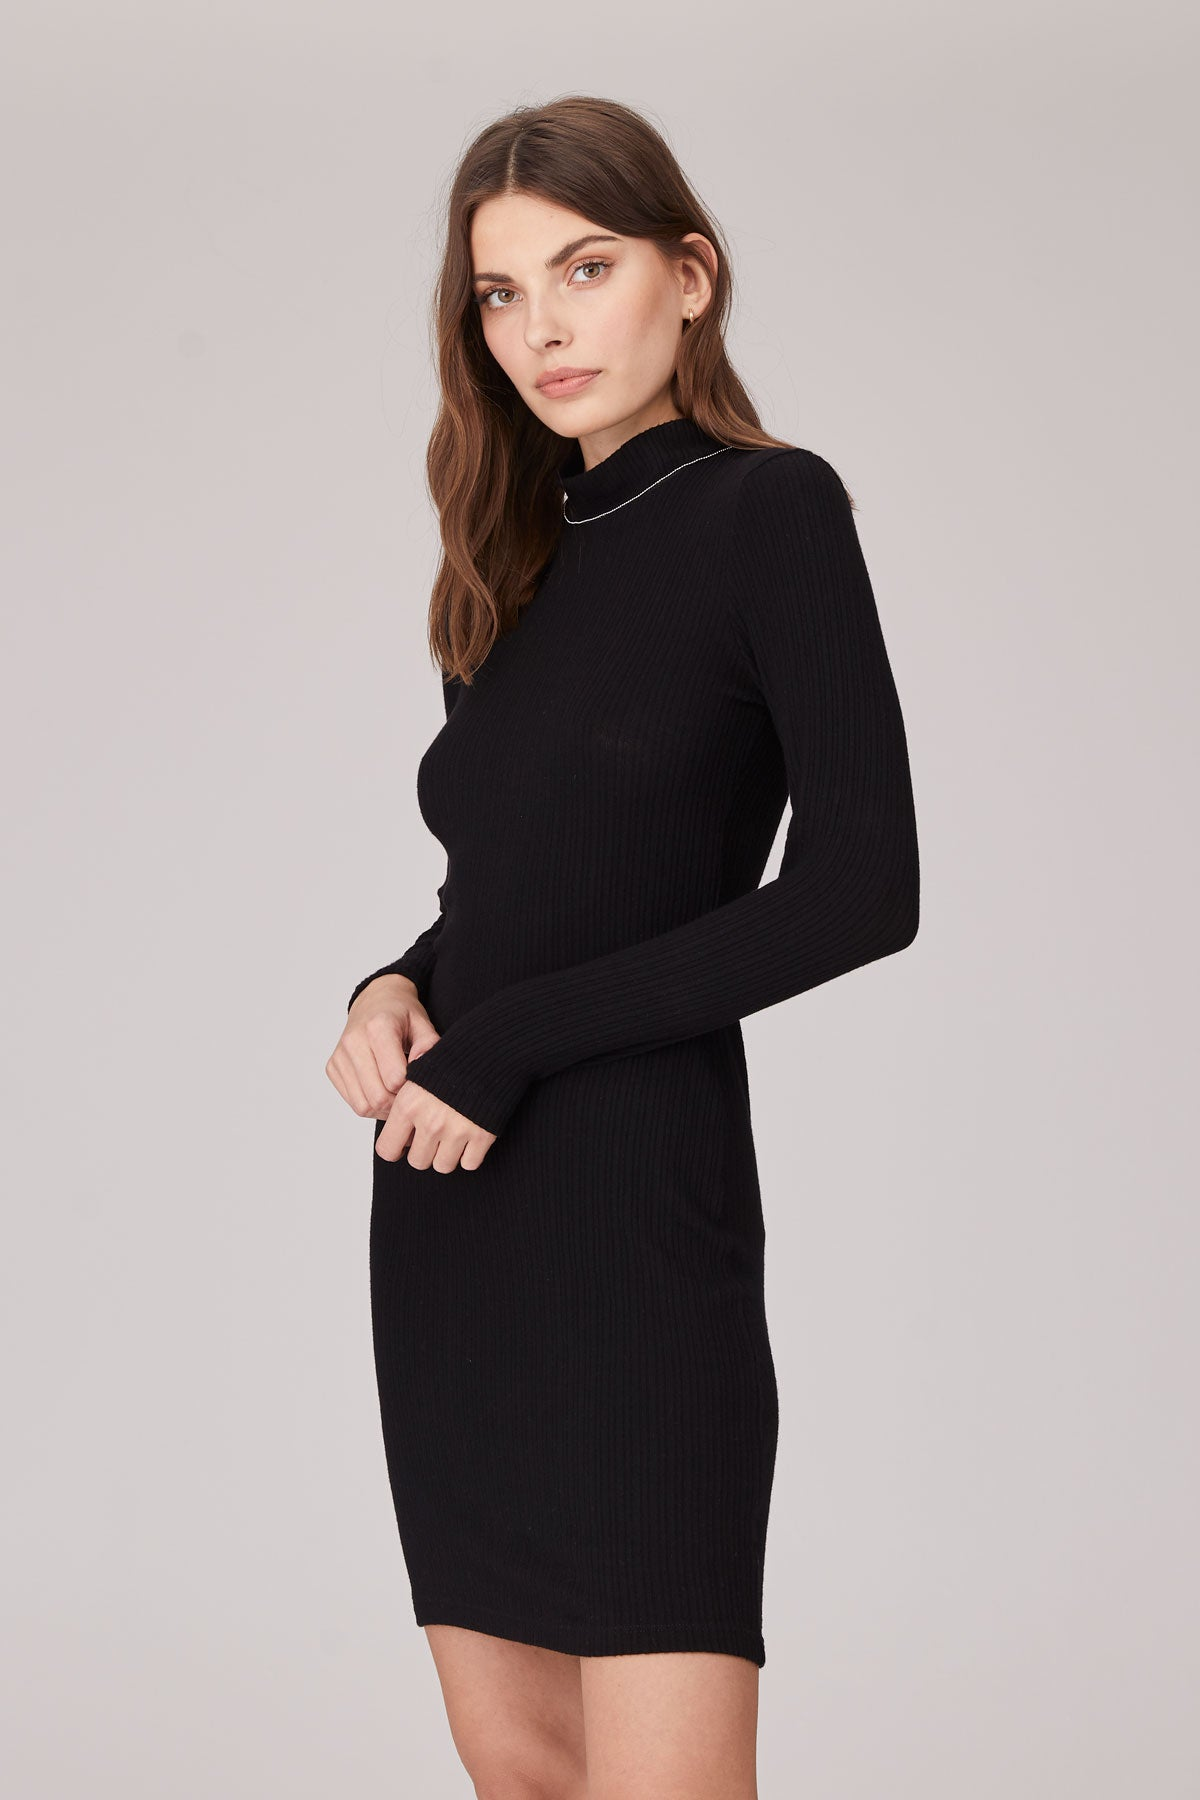 LNA Brushed Stacey Long Sleeve Rib Dress in Black